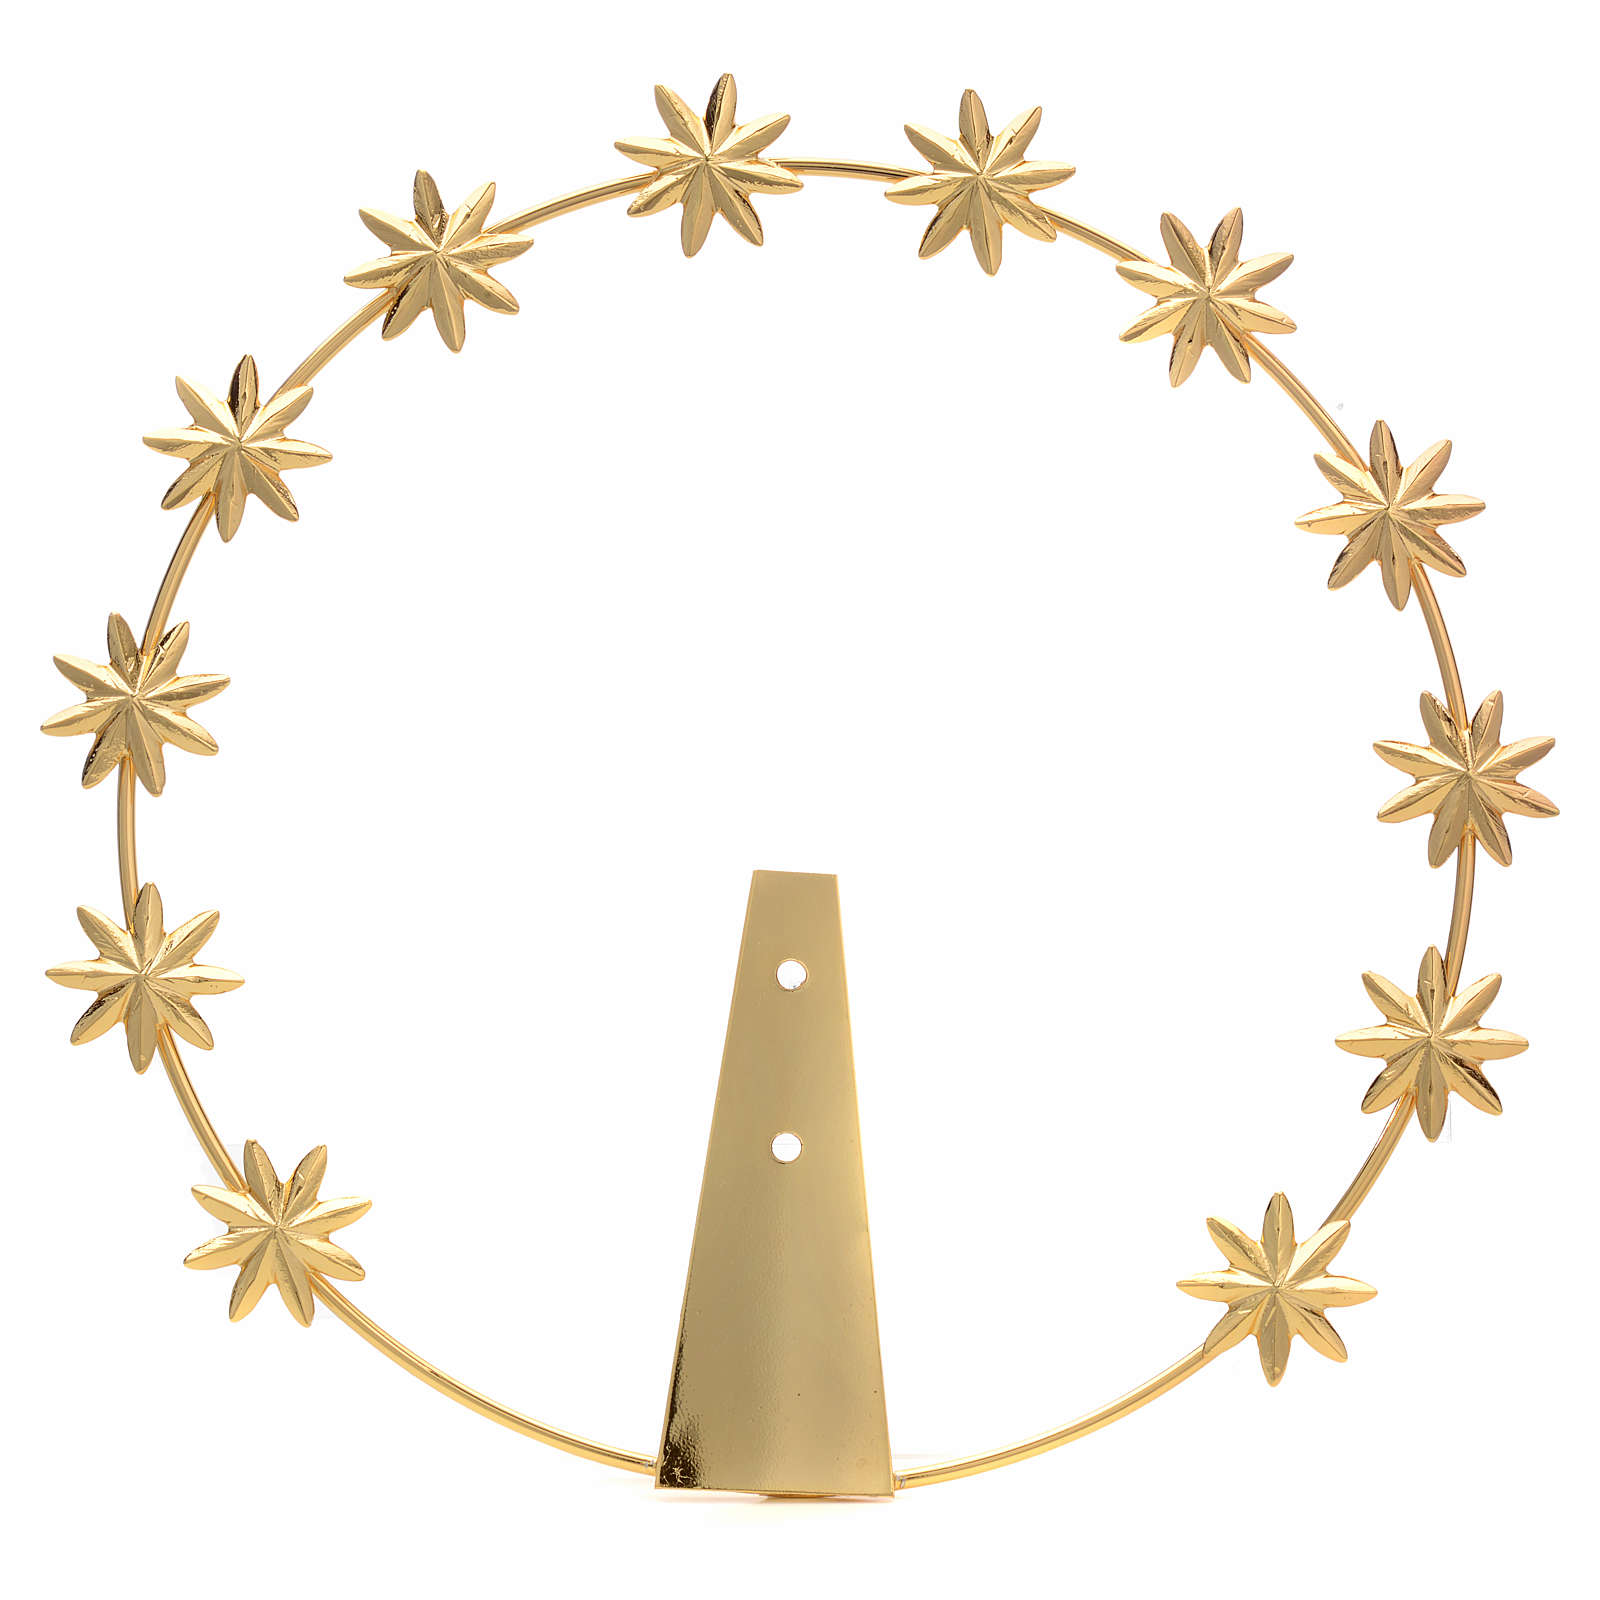 Halo with 8 pointed stars 3